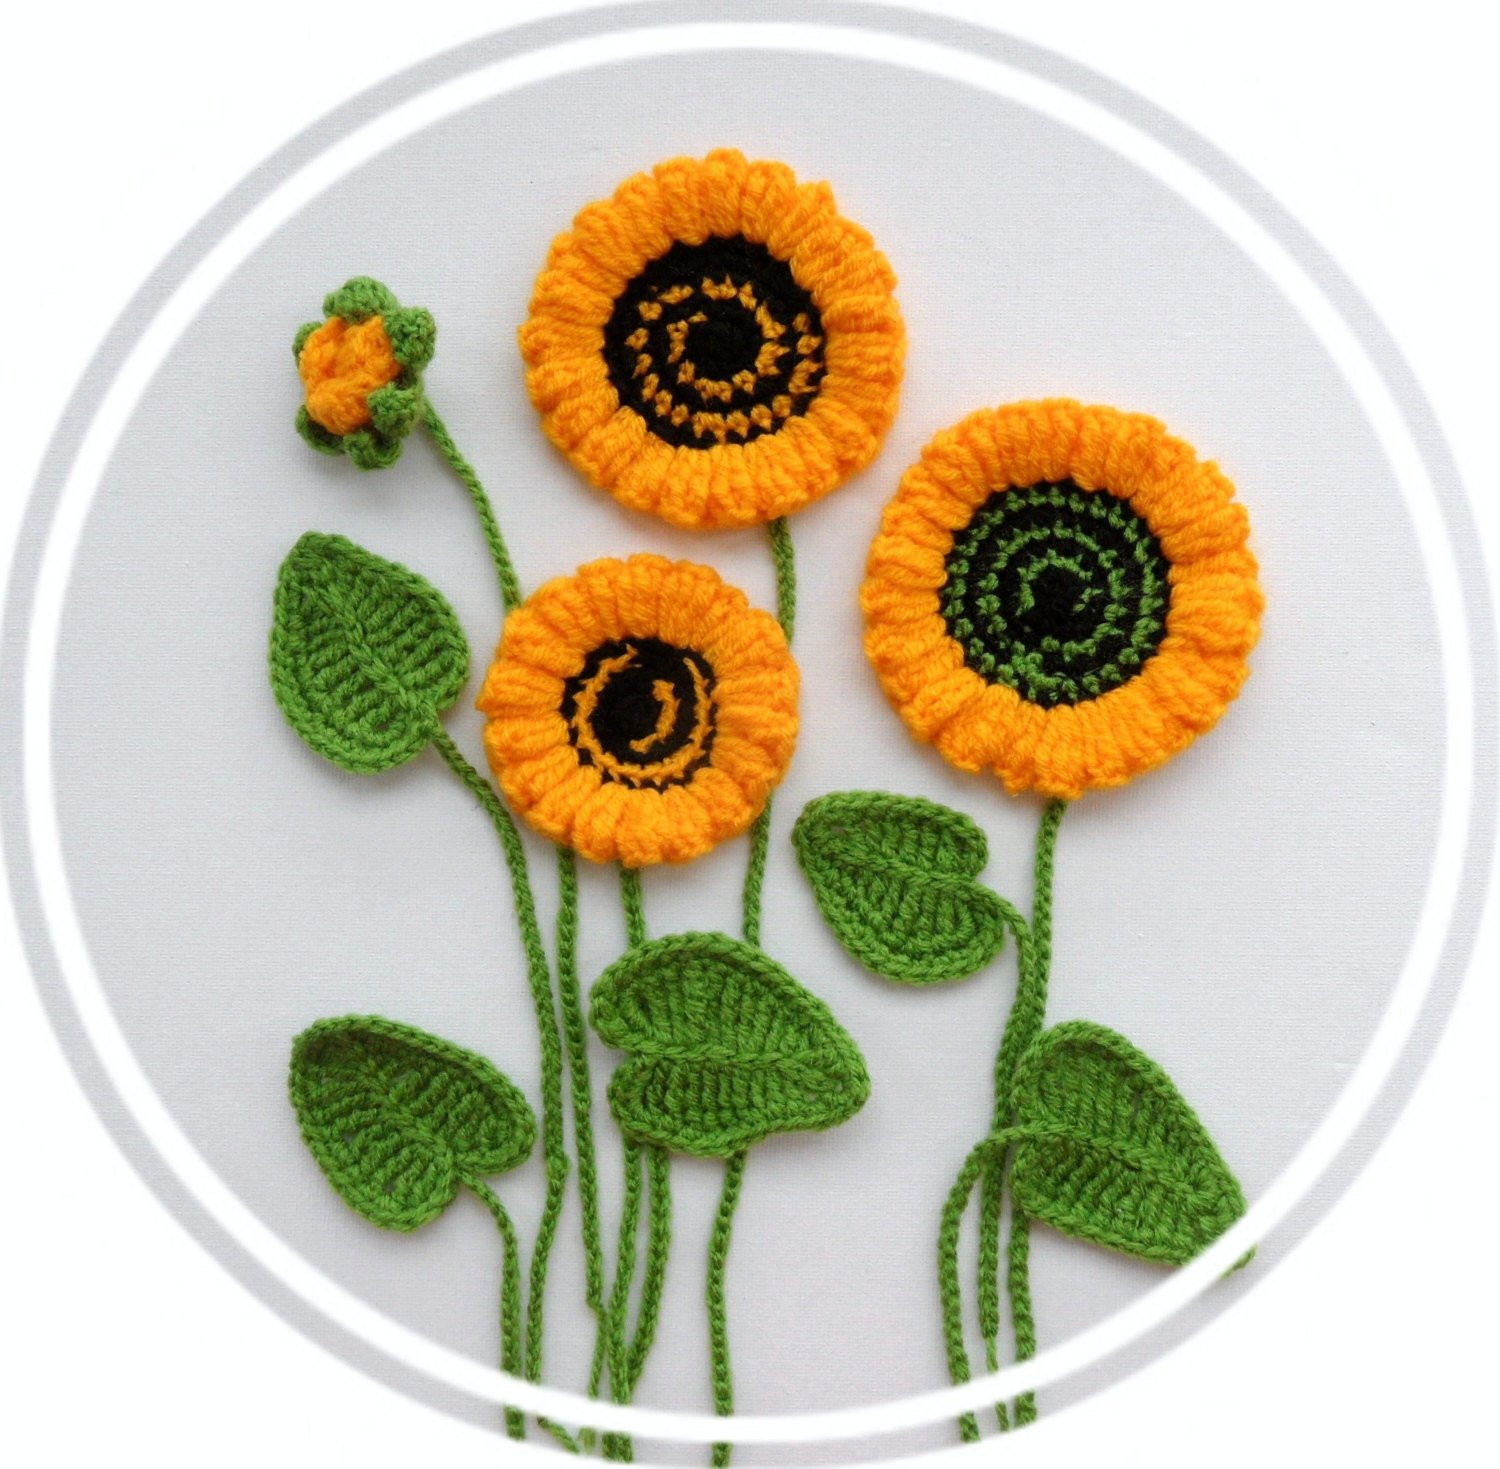 Crochet Applique Best Of Crochet Applique Sunflowers and Leaves Set Made to Of Marvelous 47 Images Crochet Applique